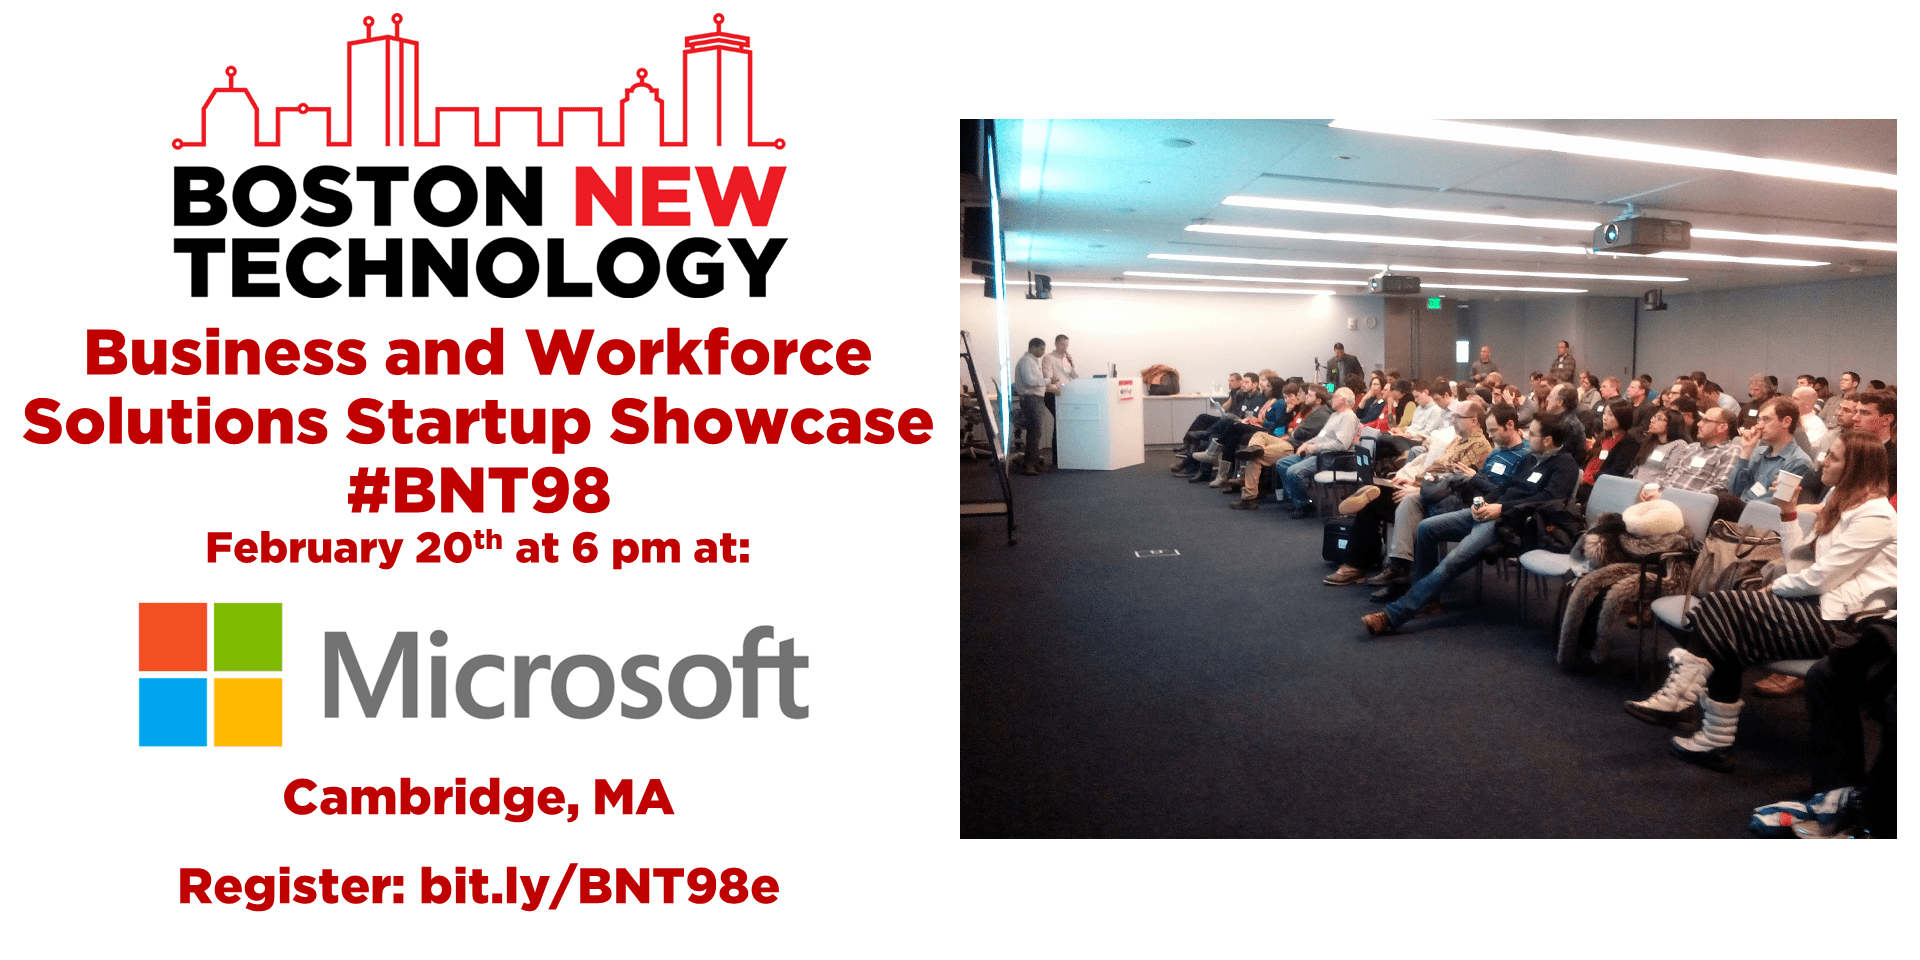 Boston New Technology Business and Workforce Solutions